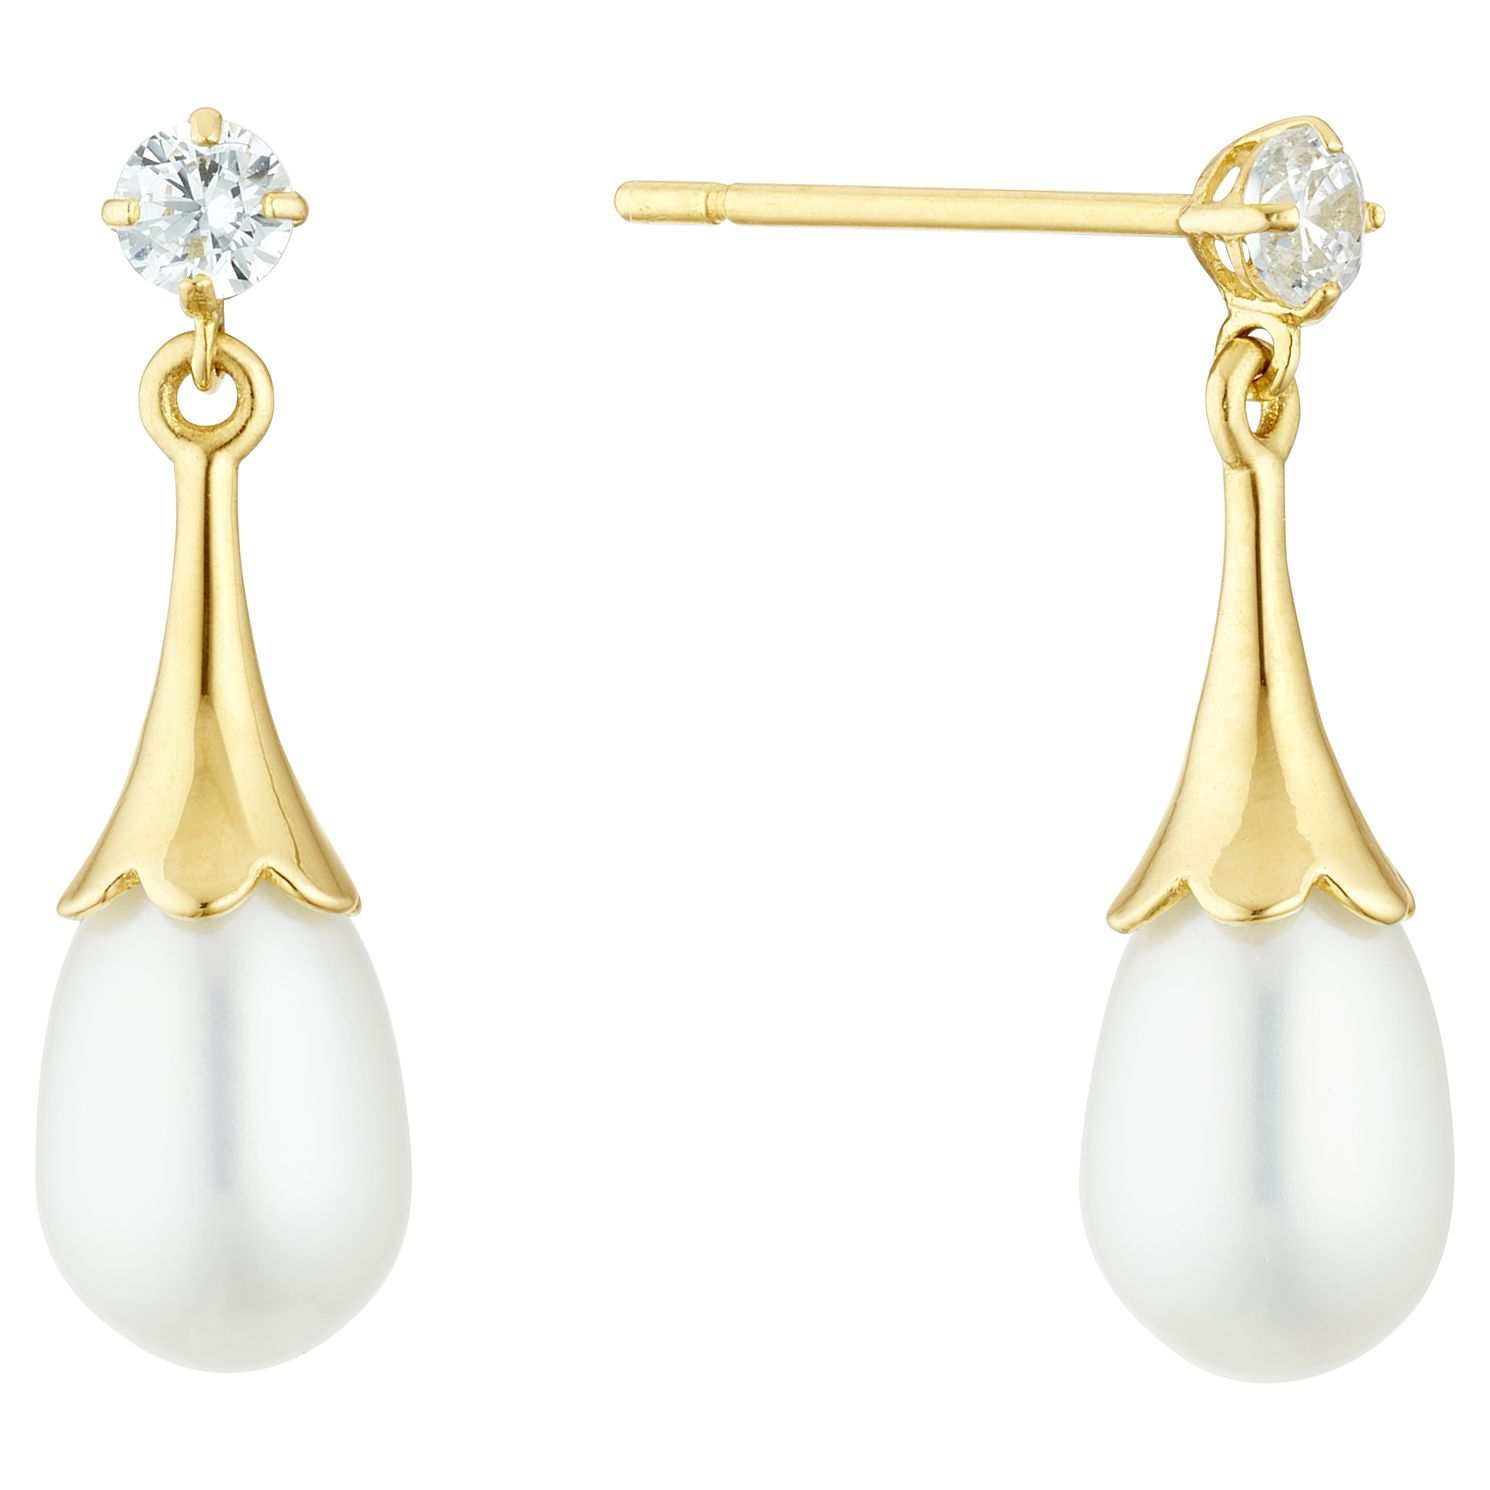 9ct Gold Cultured Freshwater Pearl & Cubic Zirconia Earrings - Product number 3280020